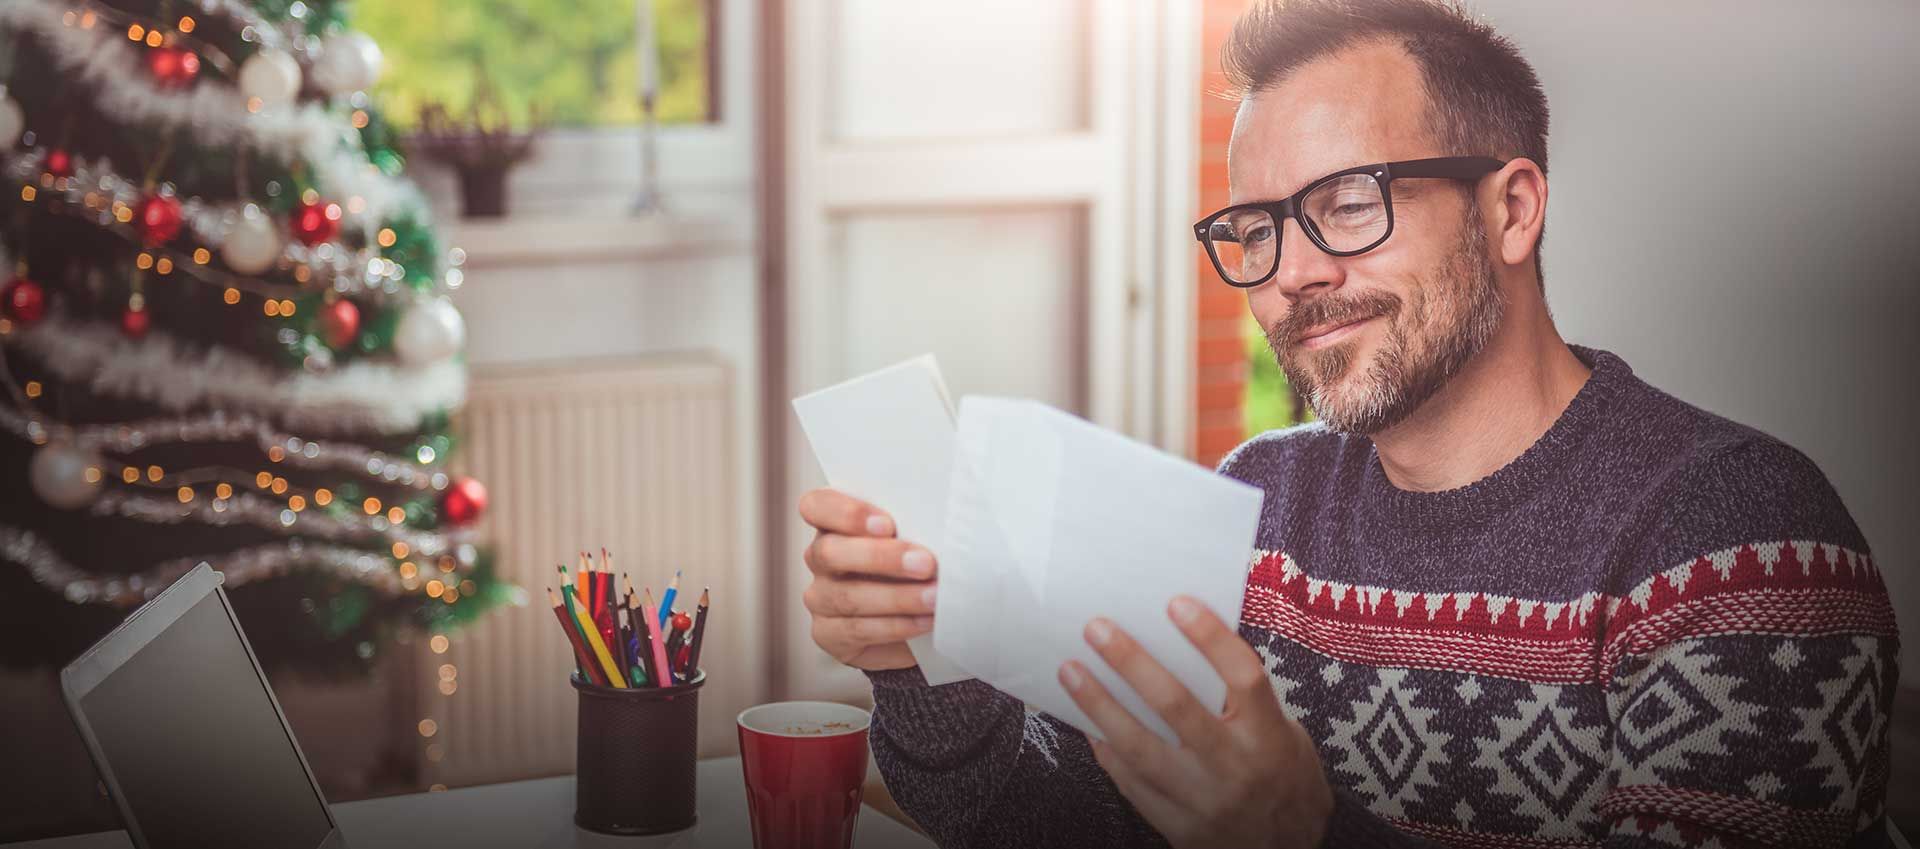 Man in front of Christmas tree stuffing envelopes